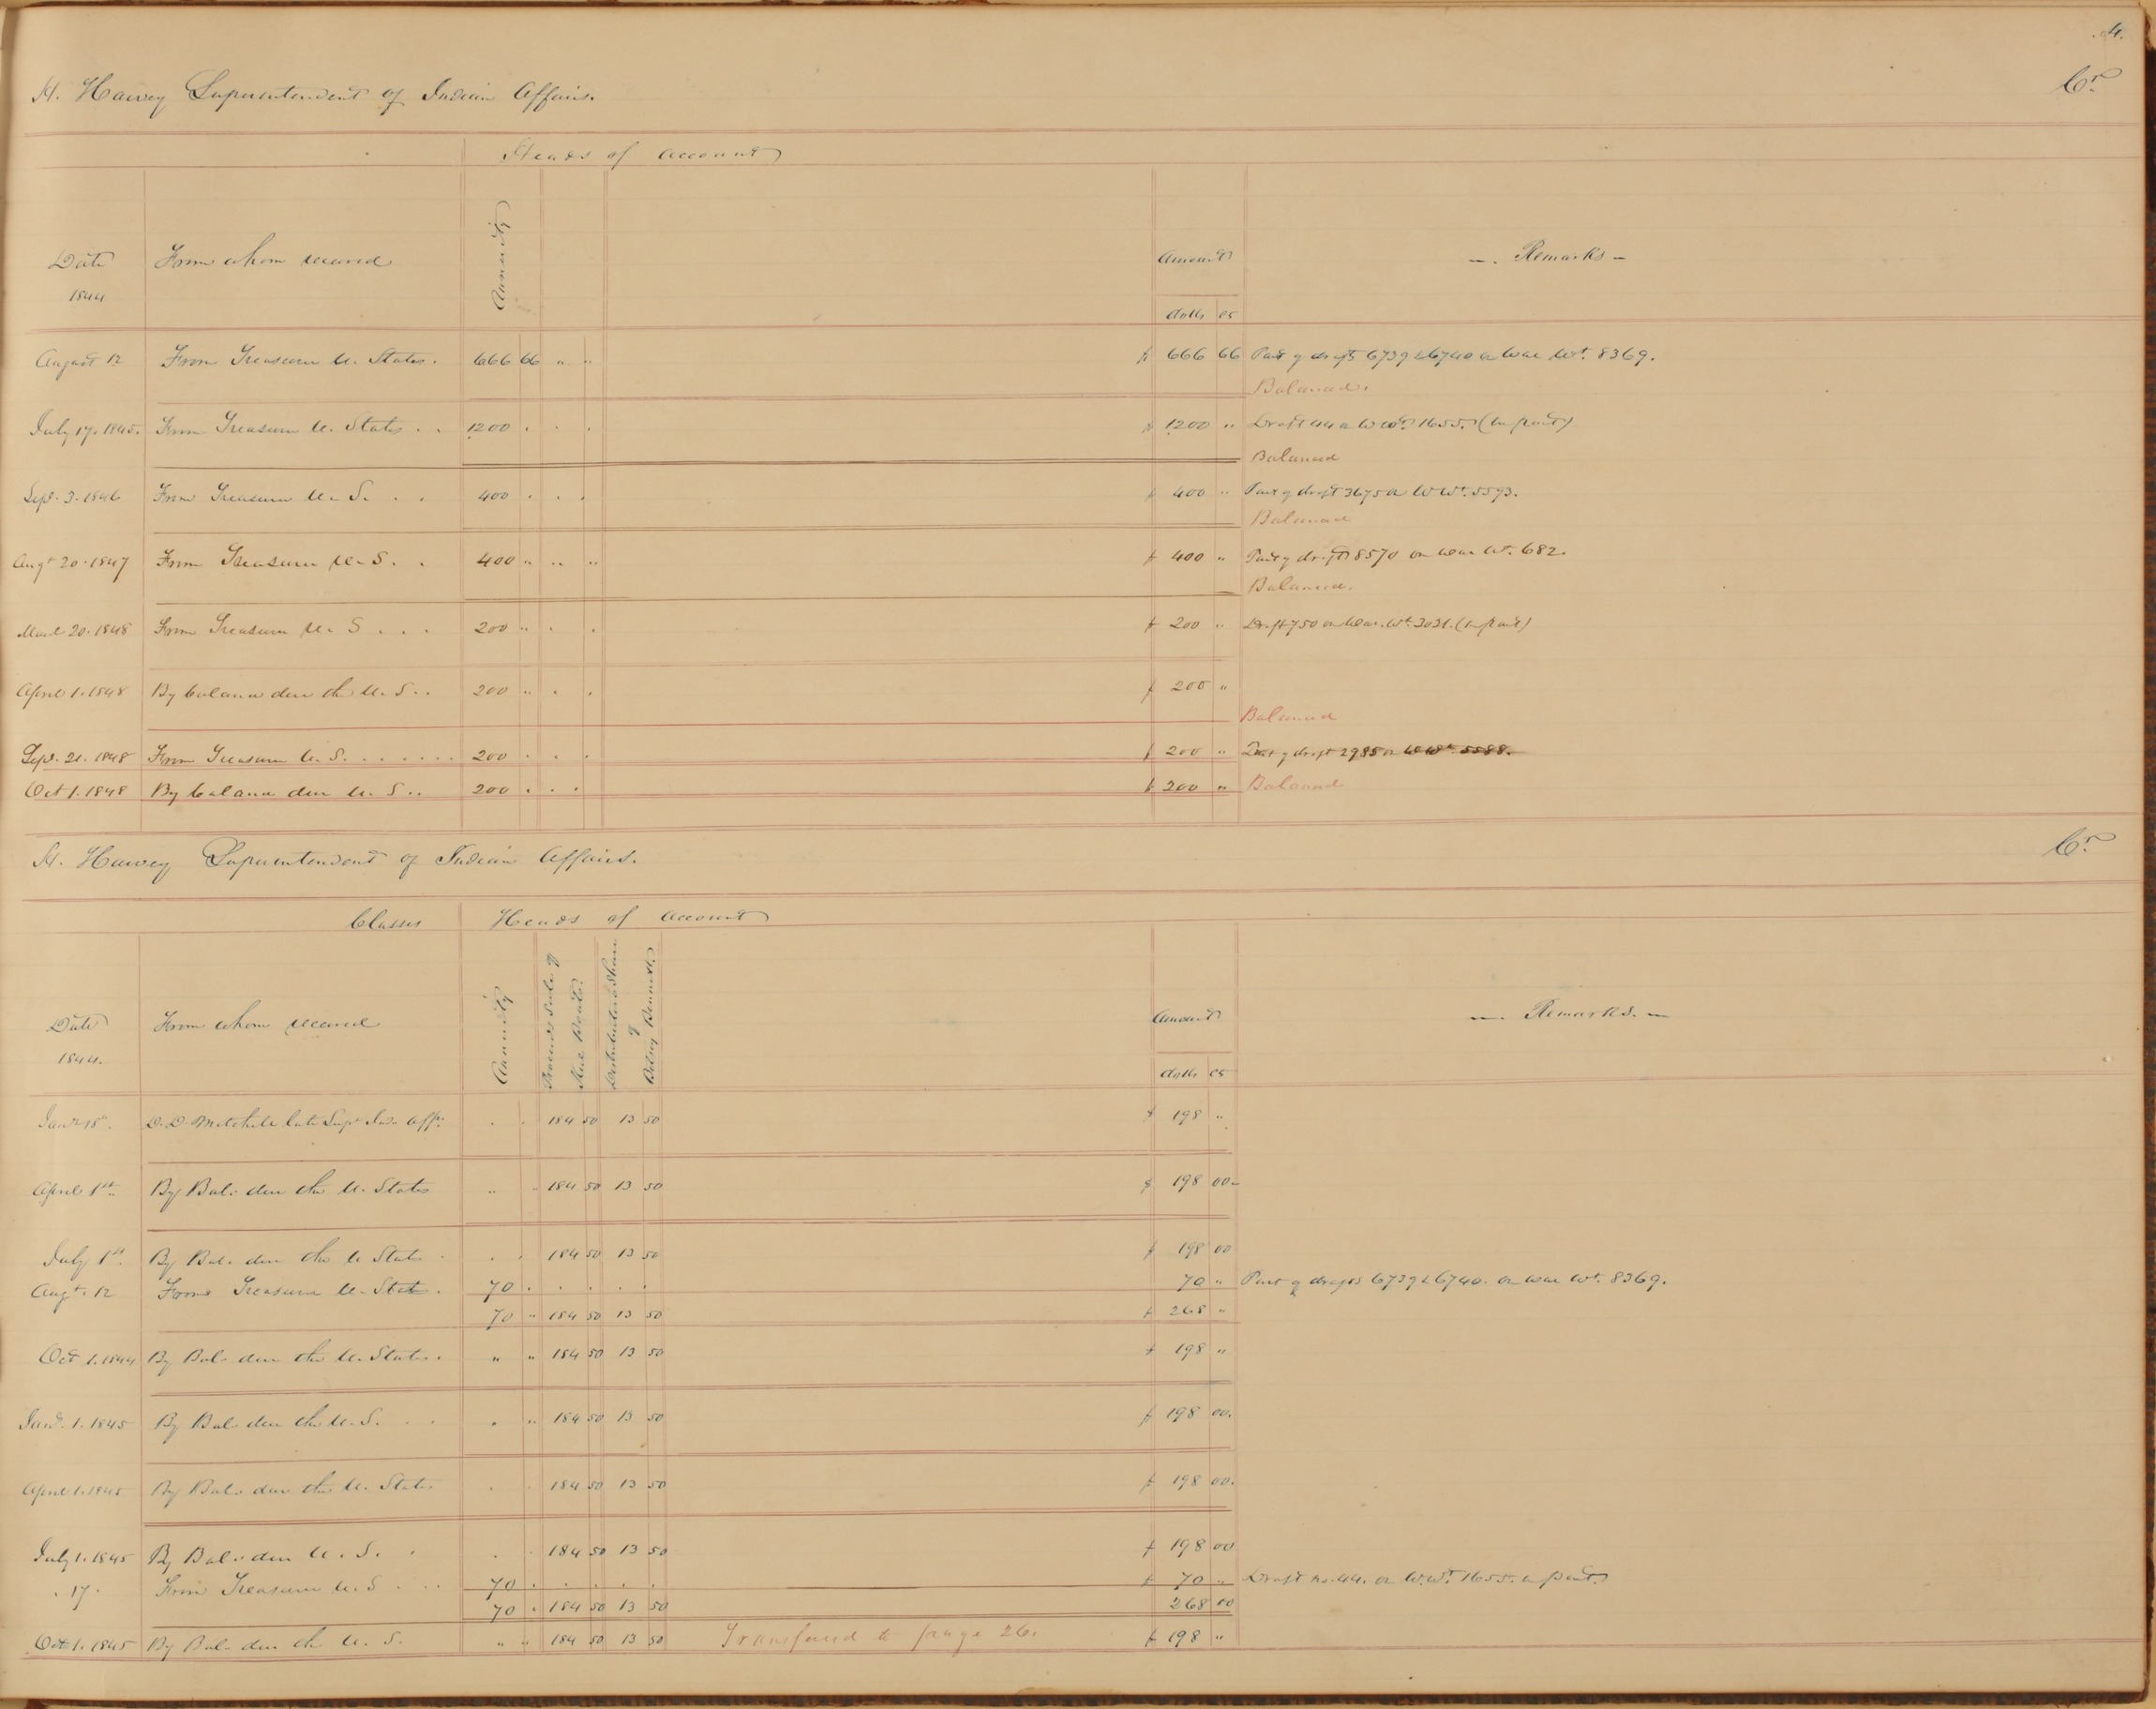 United States Office of Indian Affairs, Central Superintendency, St. Louis, Missouri. Volume 15, Accounts - 4 (cont.)